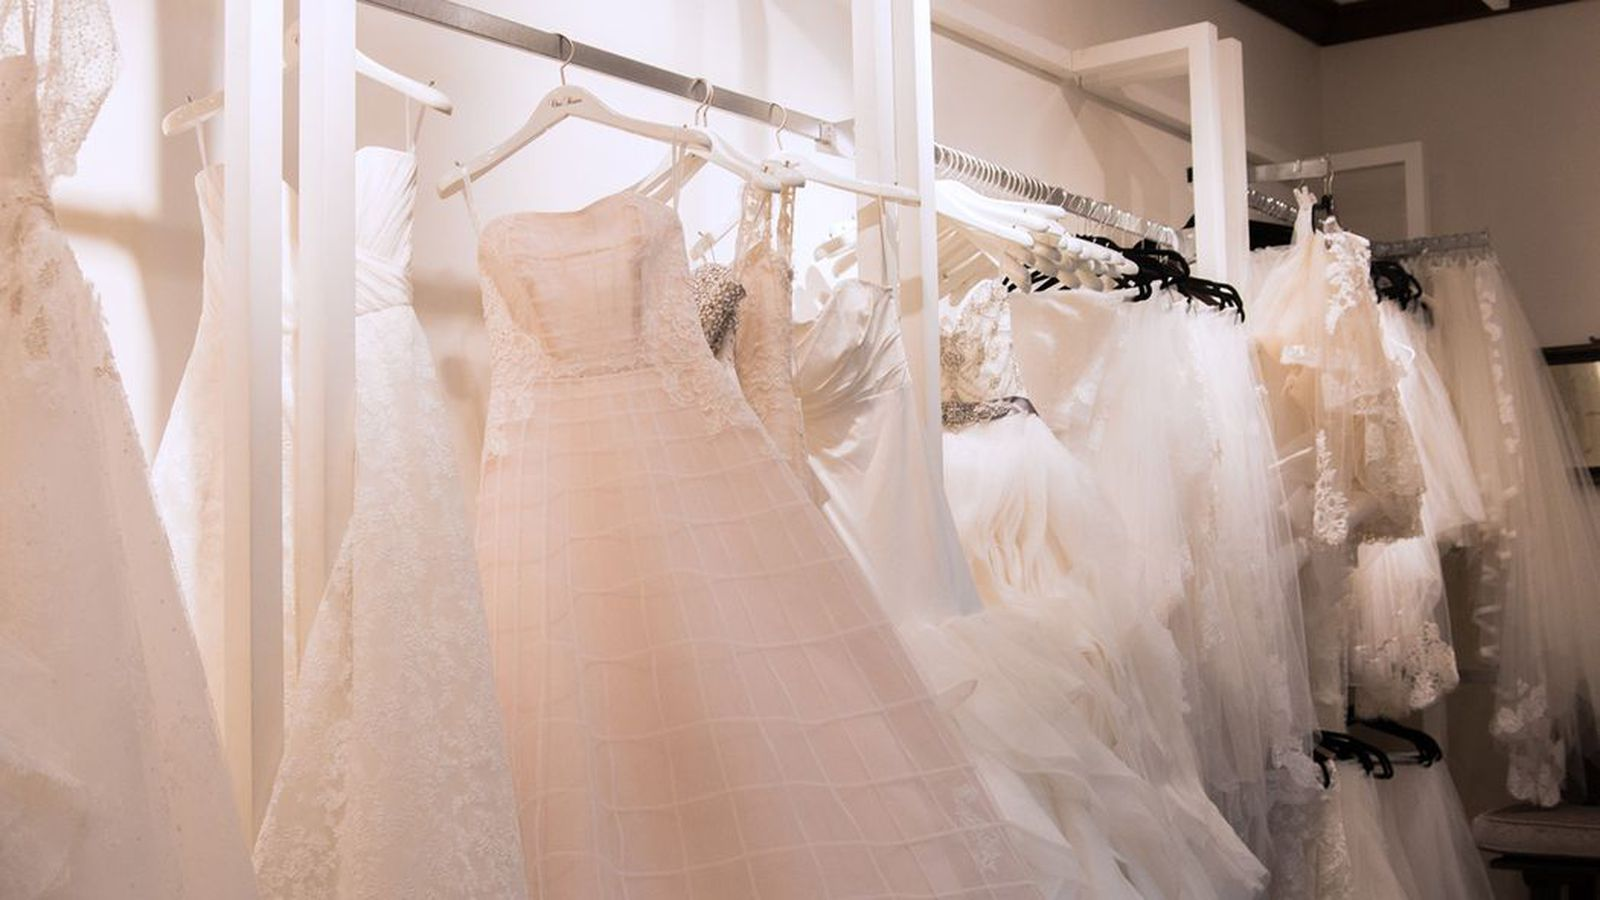 What it 39 s really like to rent your wedding dress racked for Where can i rent a wedding dress